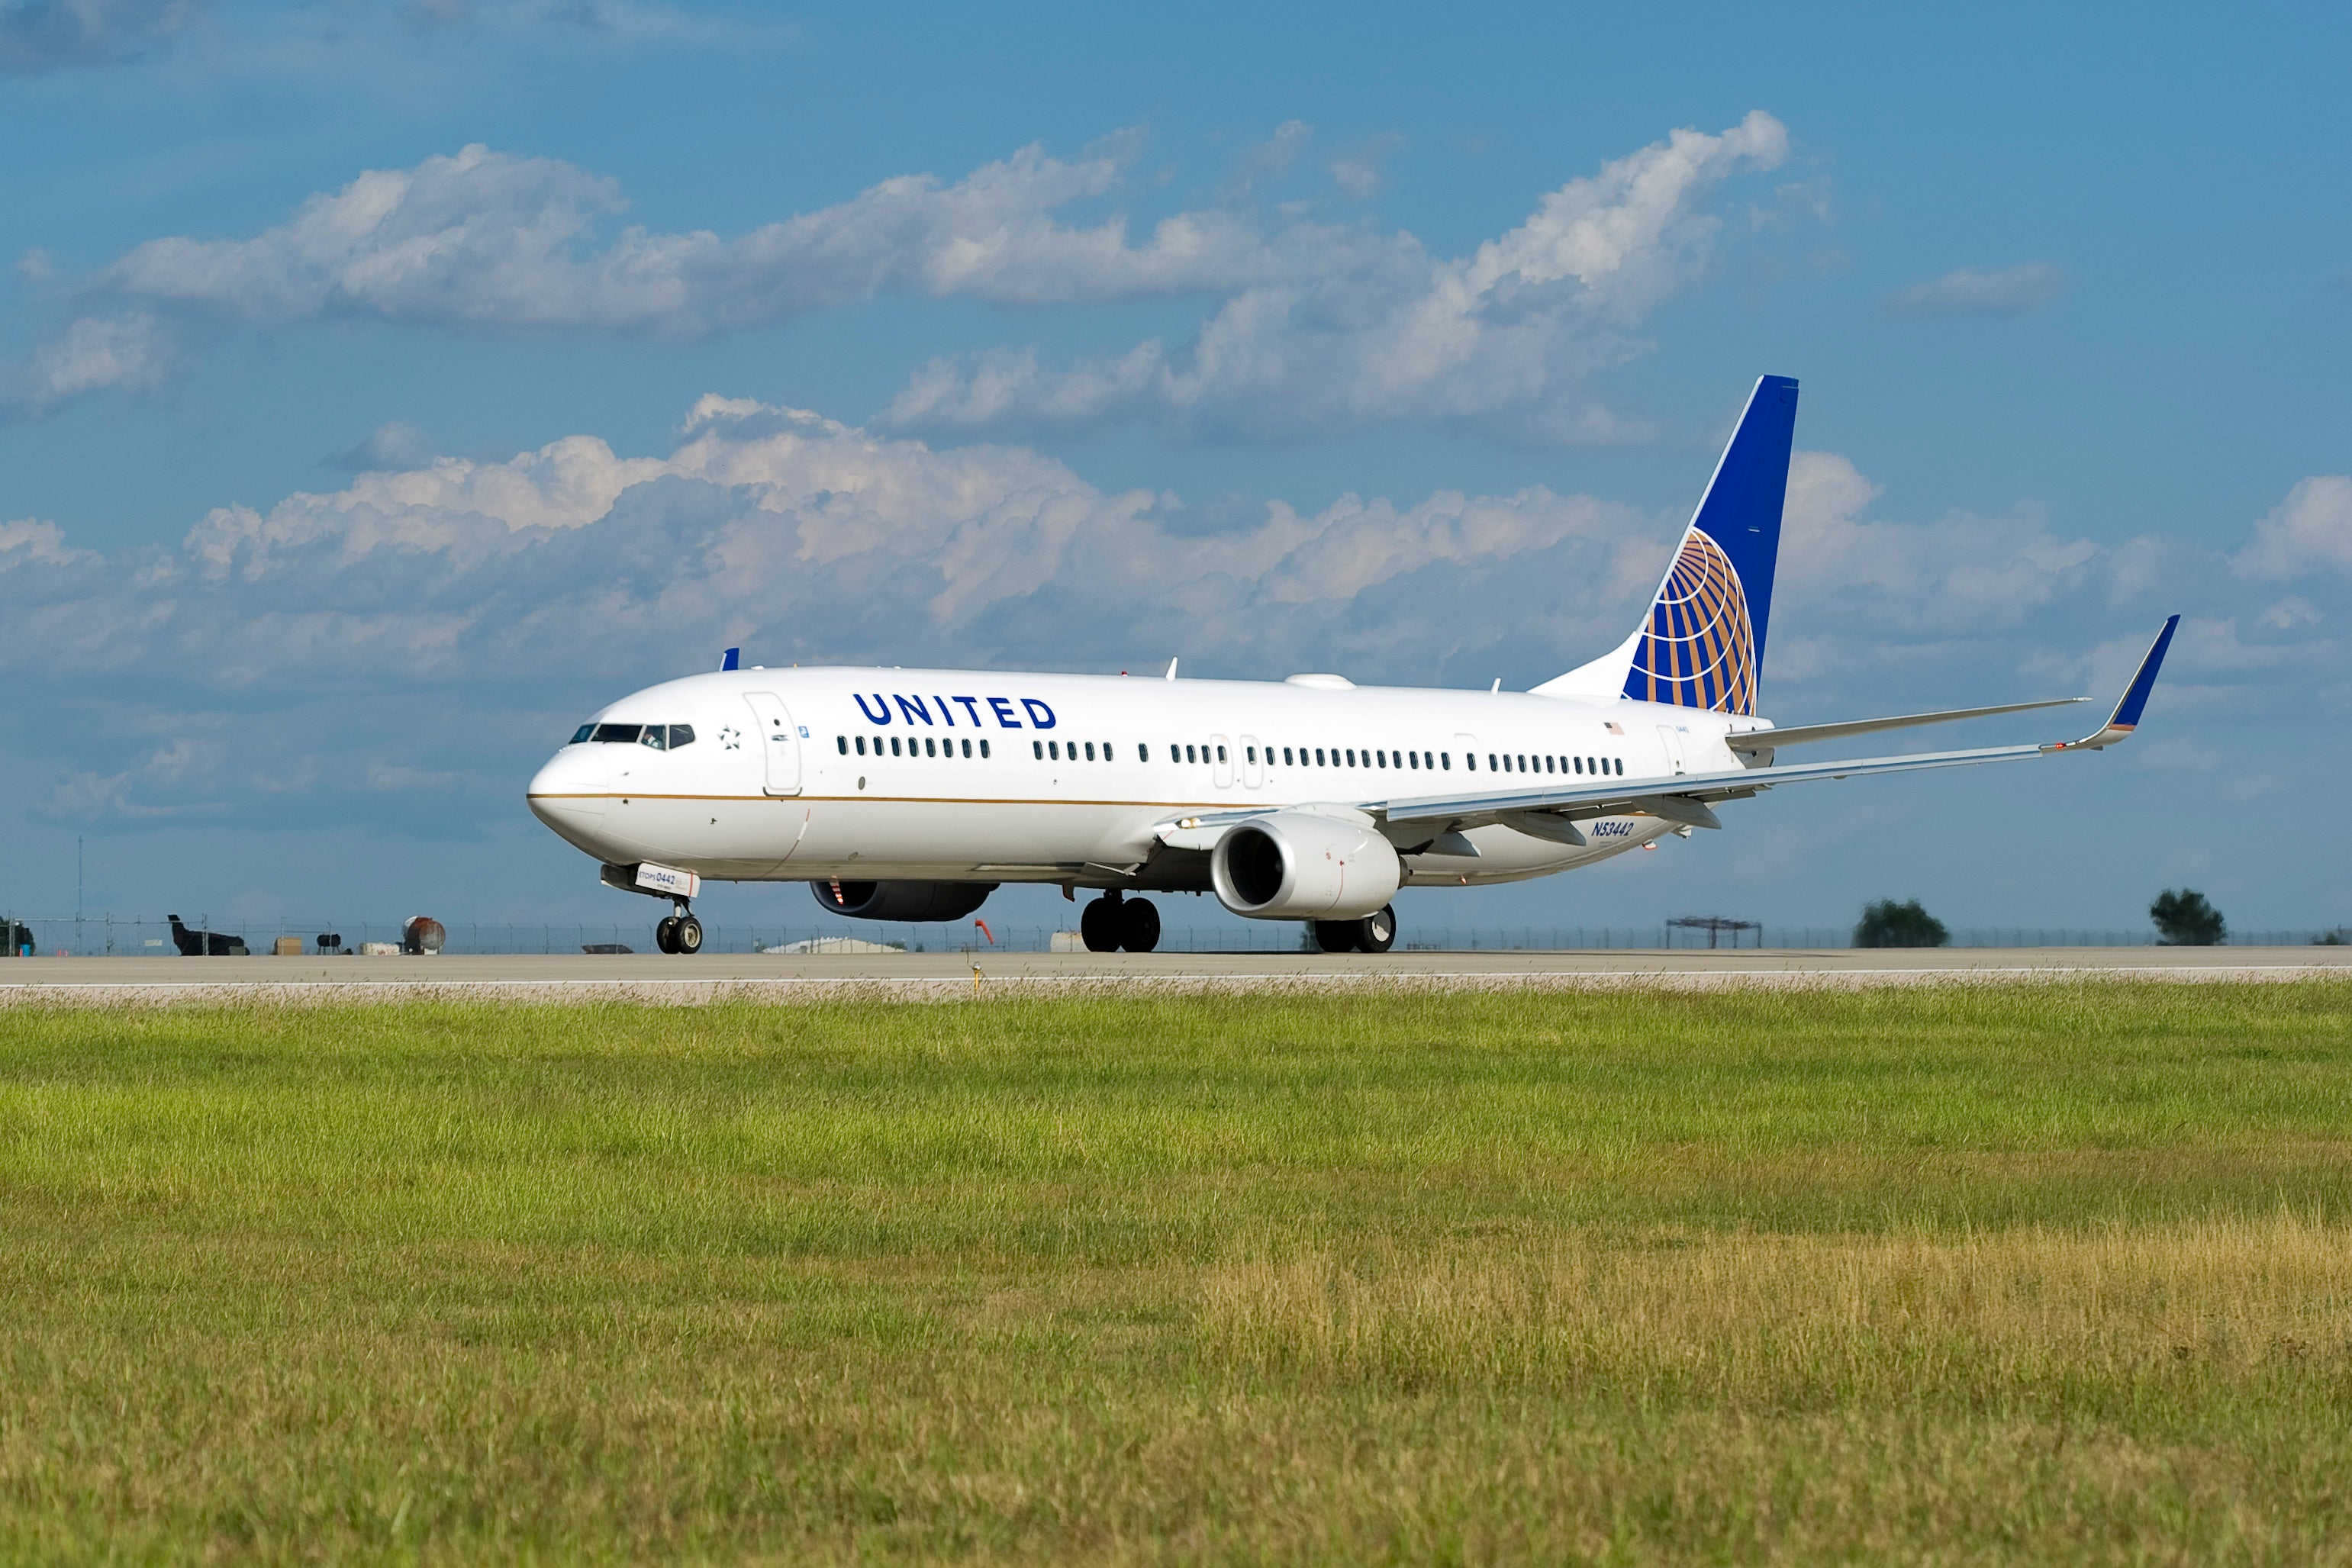 United Airlines  Basic Economy Bag Ban Probably Won t Last -- The Motley  Fool 2d76b83c8ebf0